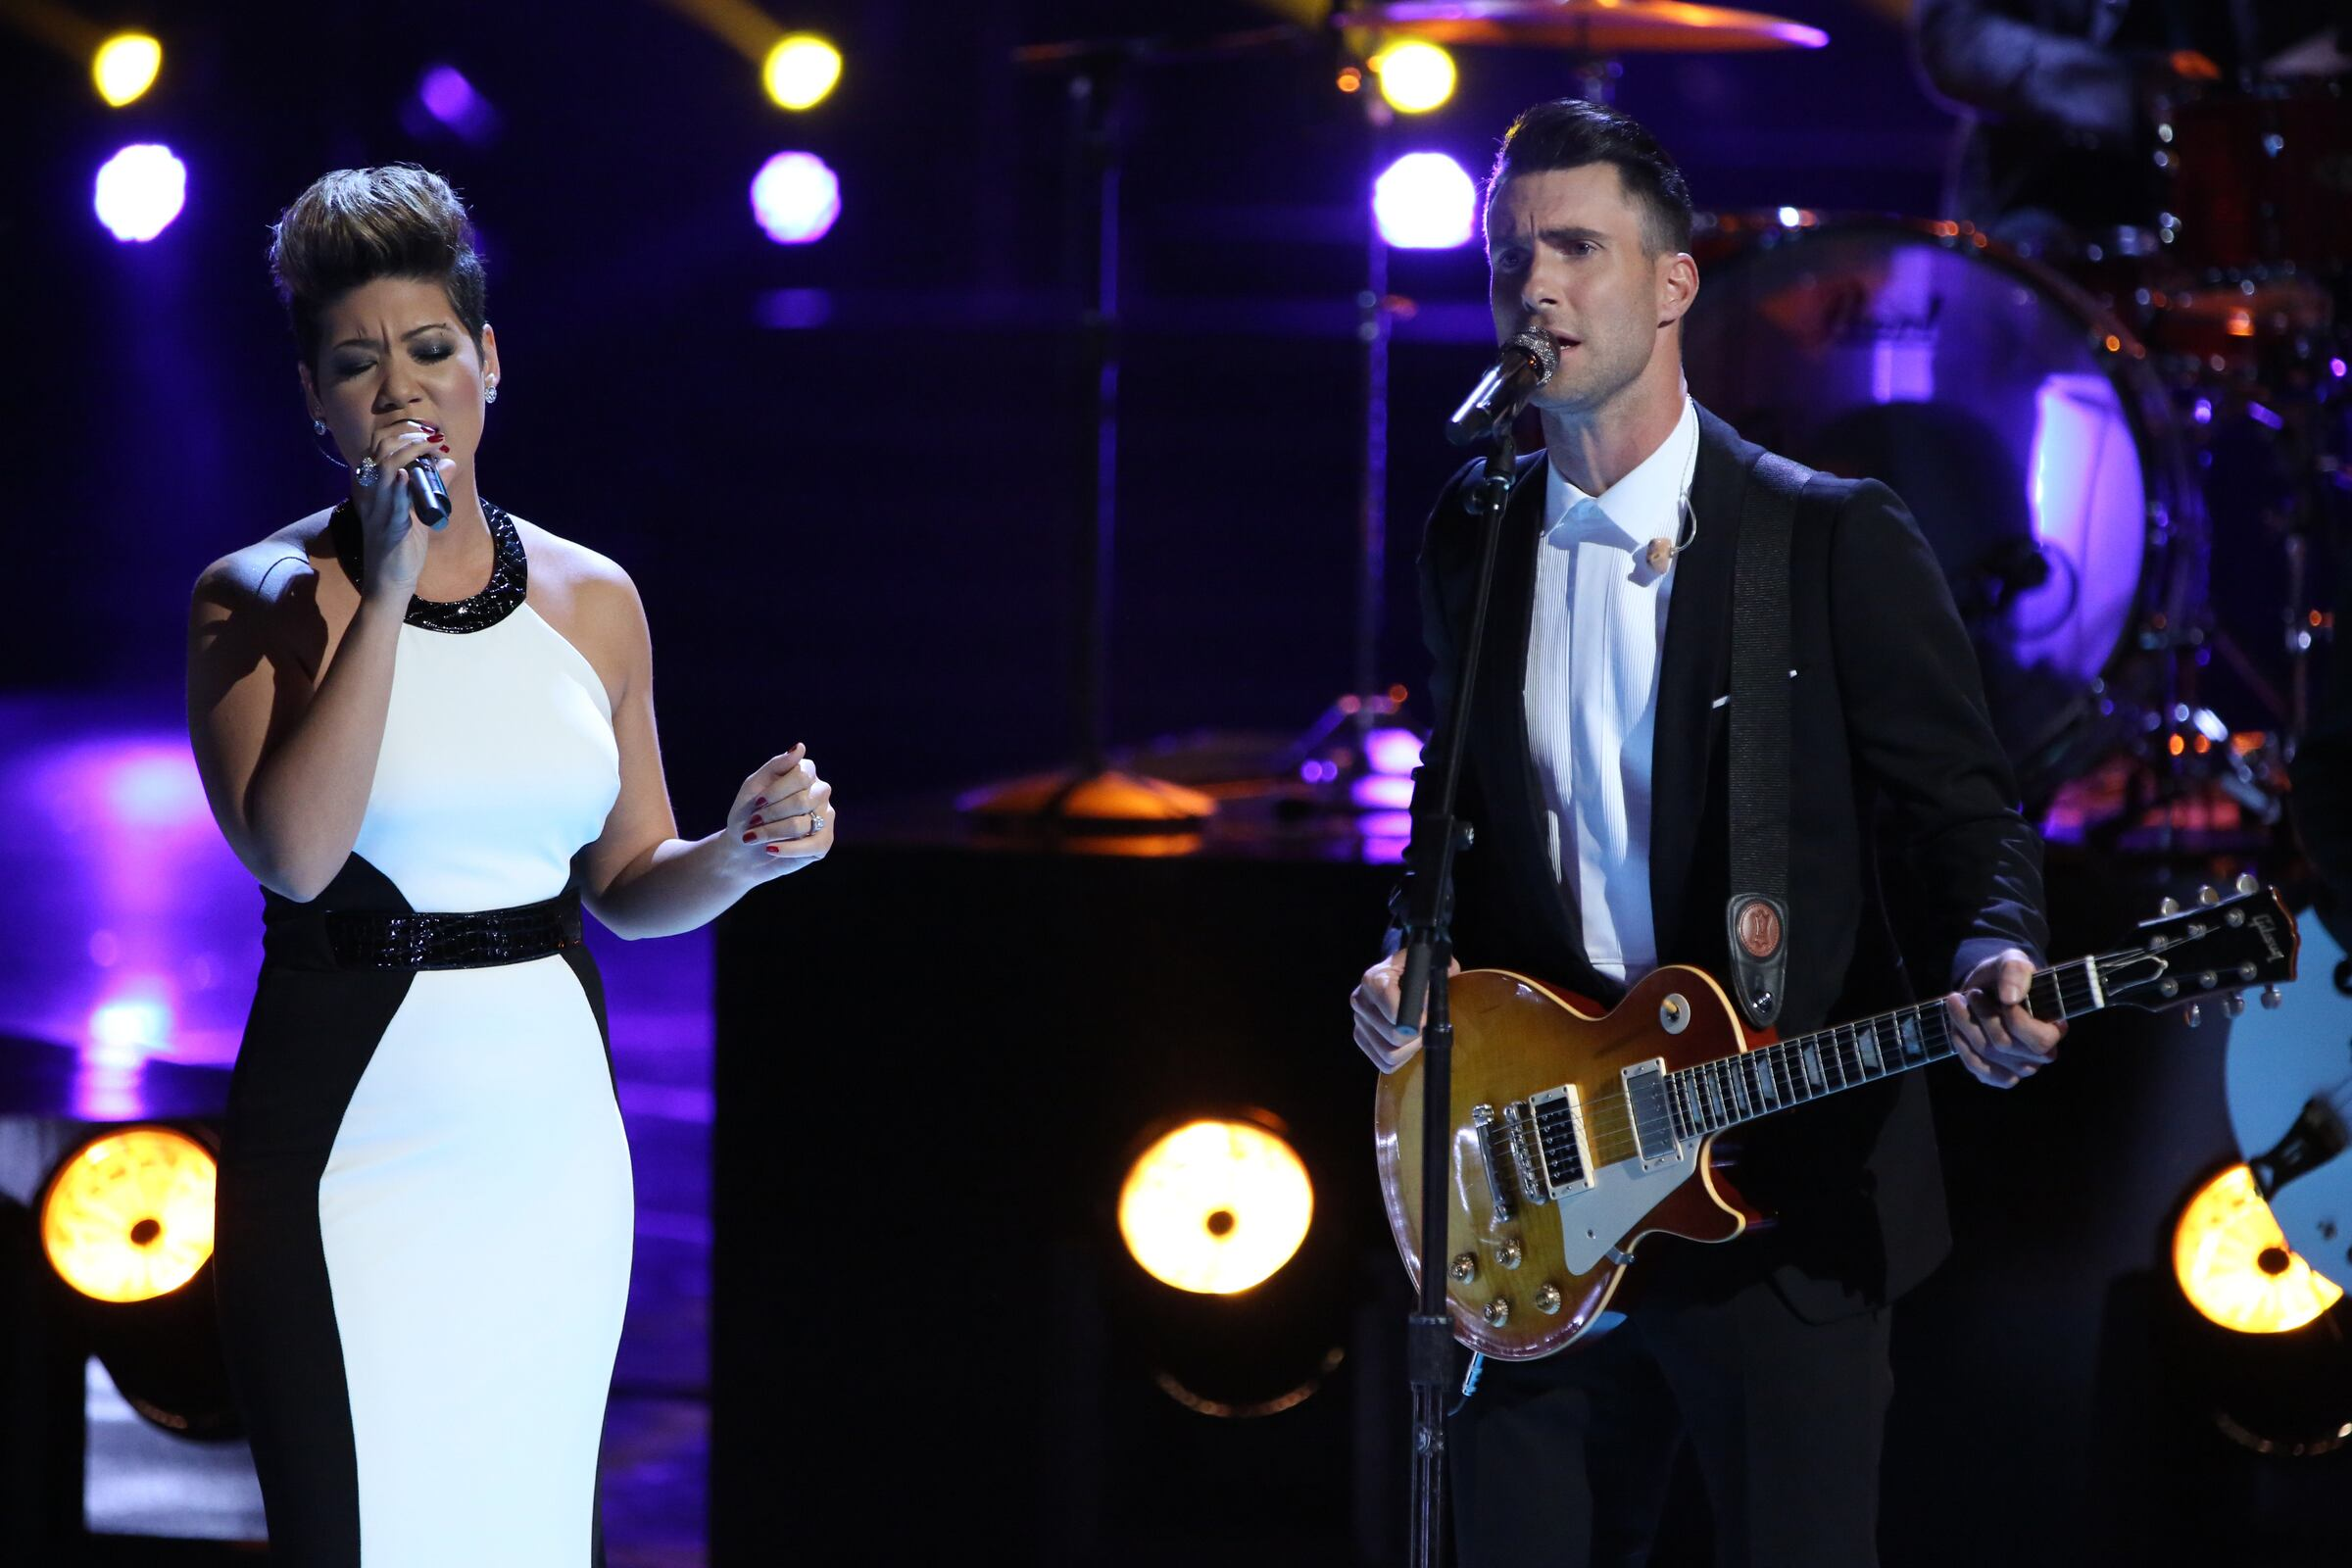 """Then Tessanne and her coach Adam Levine sang a moving duet of The Beatles' classic """"Let It Be."""""""